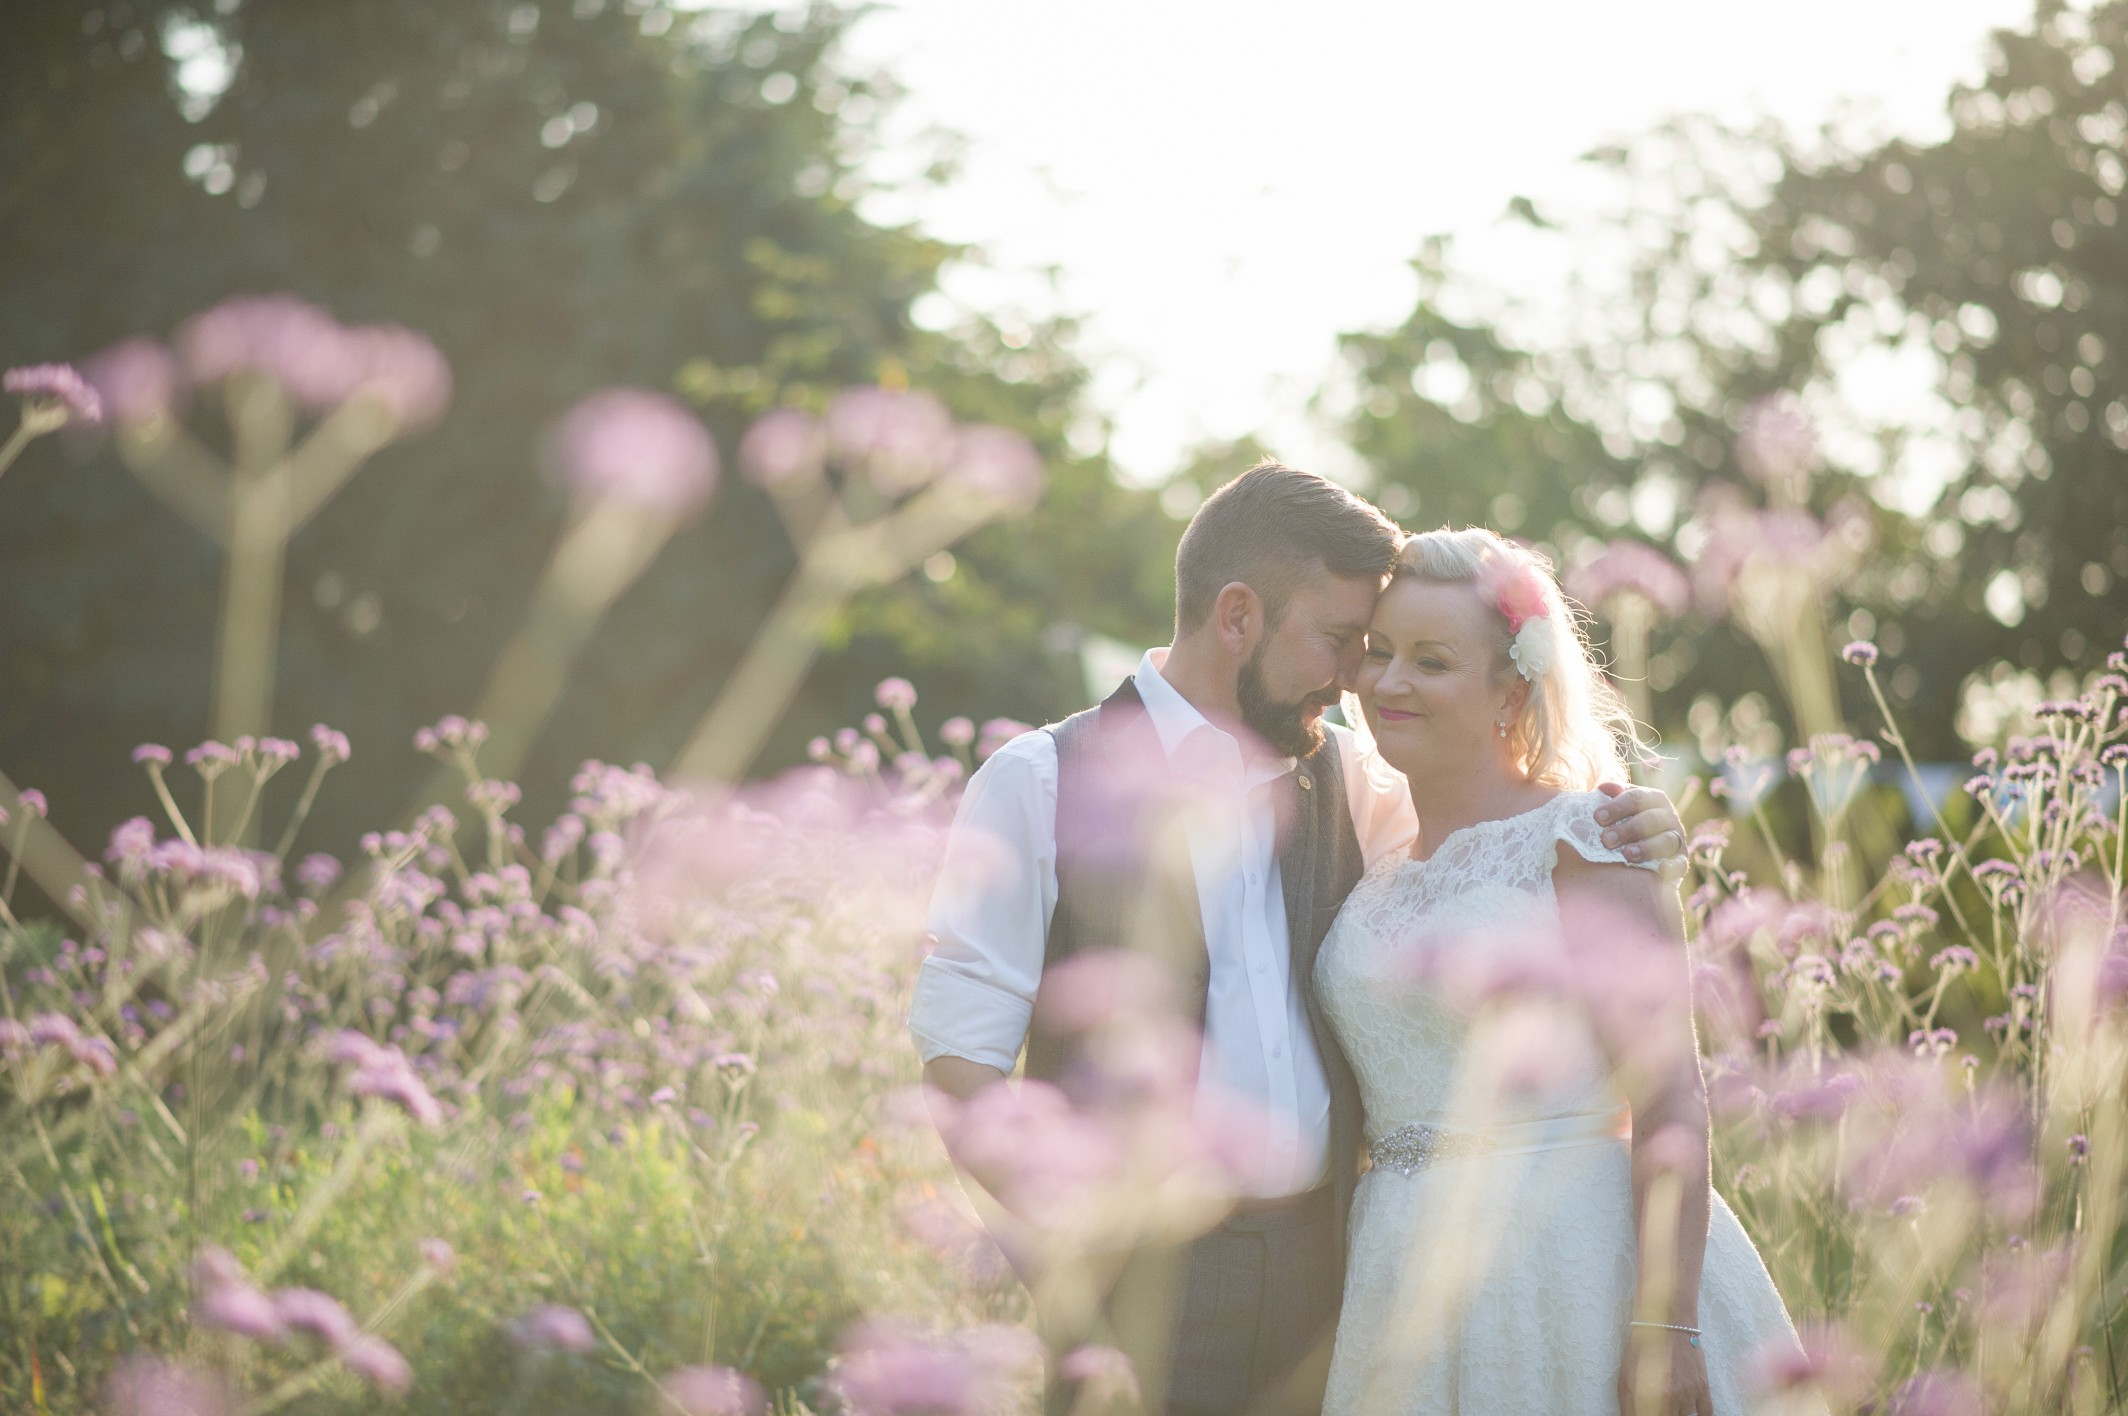 Wedding photography - rustic themed wedding at Hayne House in Saltwood, Kent - bride and groom